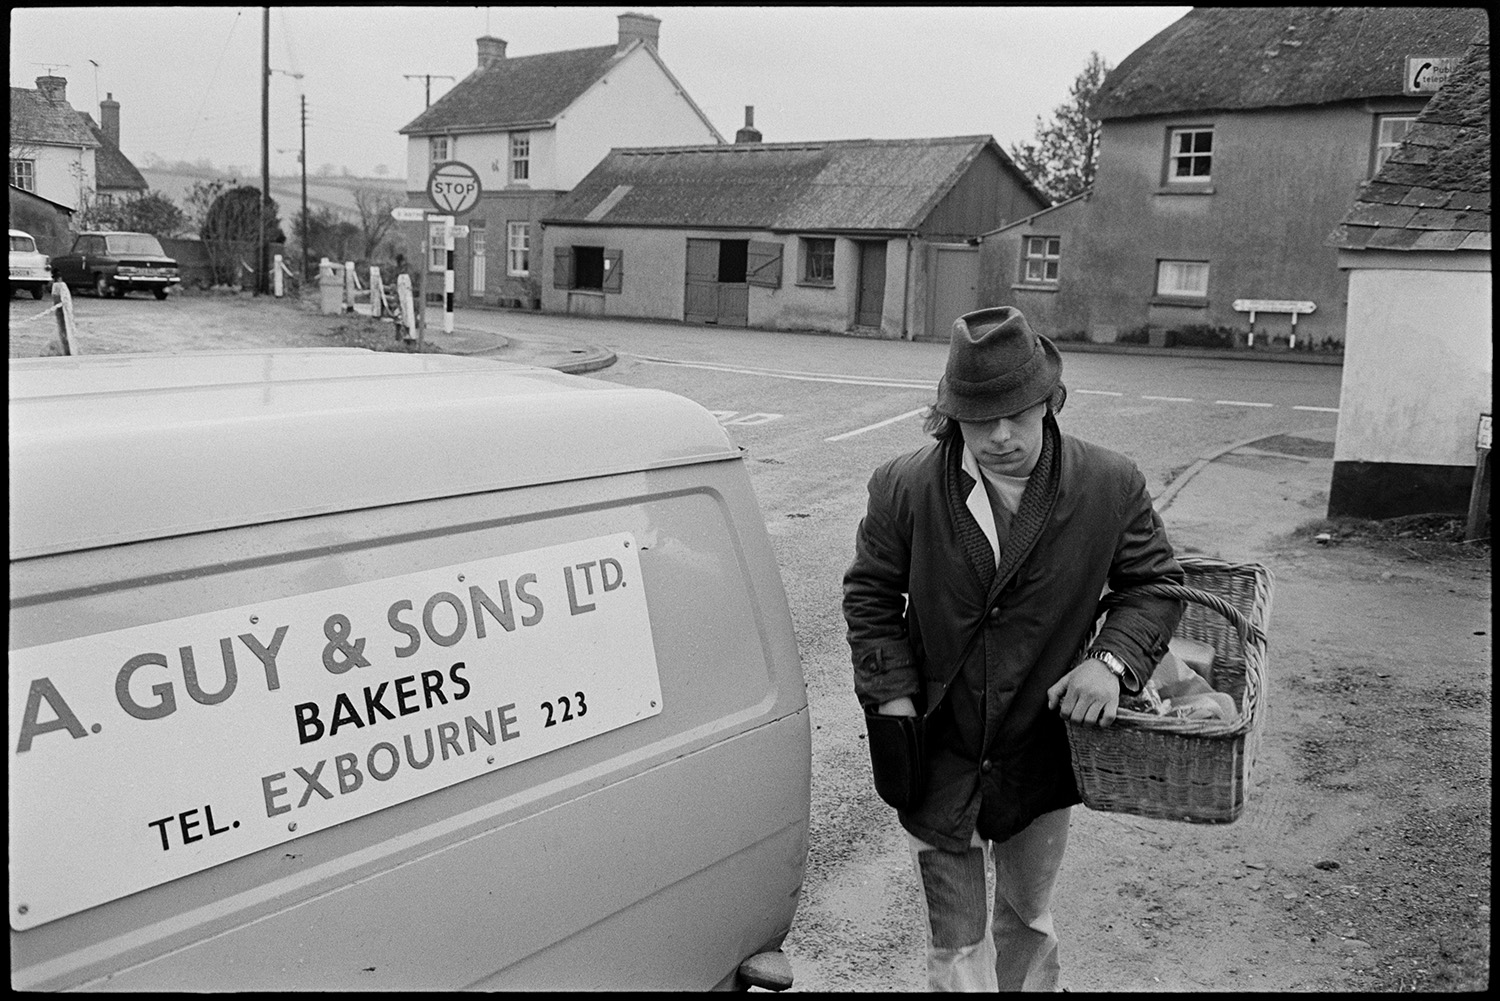 Baker delivering bread round village from van. <br /> [A baker delivering bread in Monkokehampton. He is carrying a basket and walking past an A Guy & Sons Ltd of Exbourne baker's van. Houses can be seen in the background.]